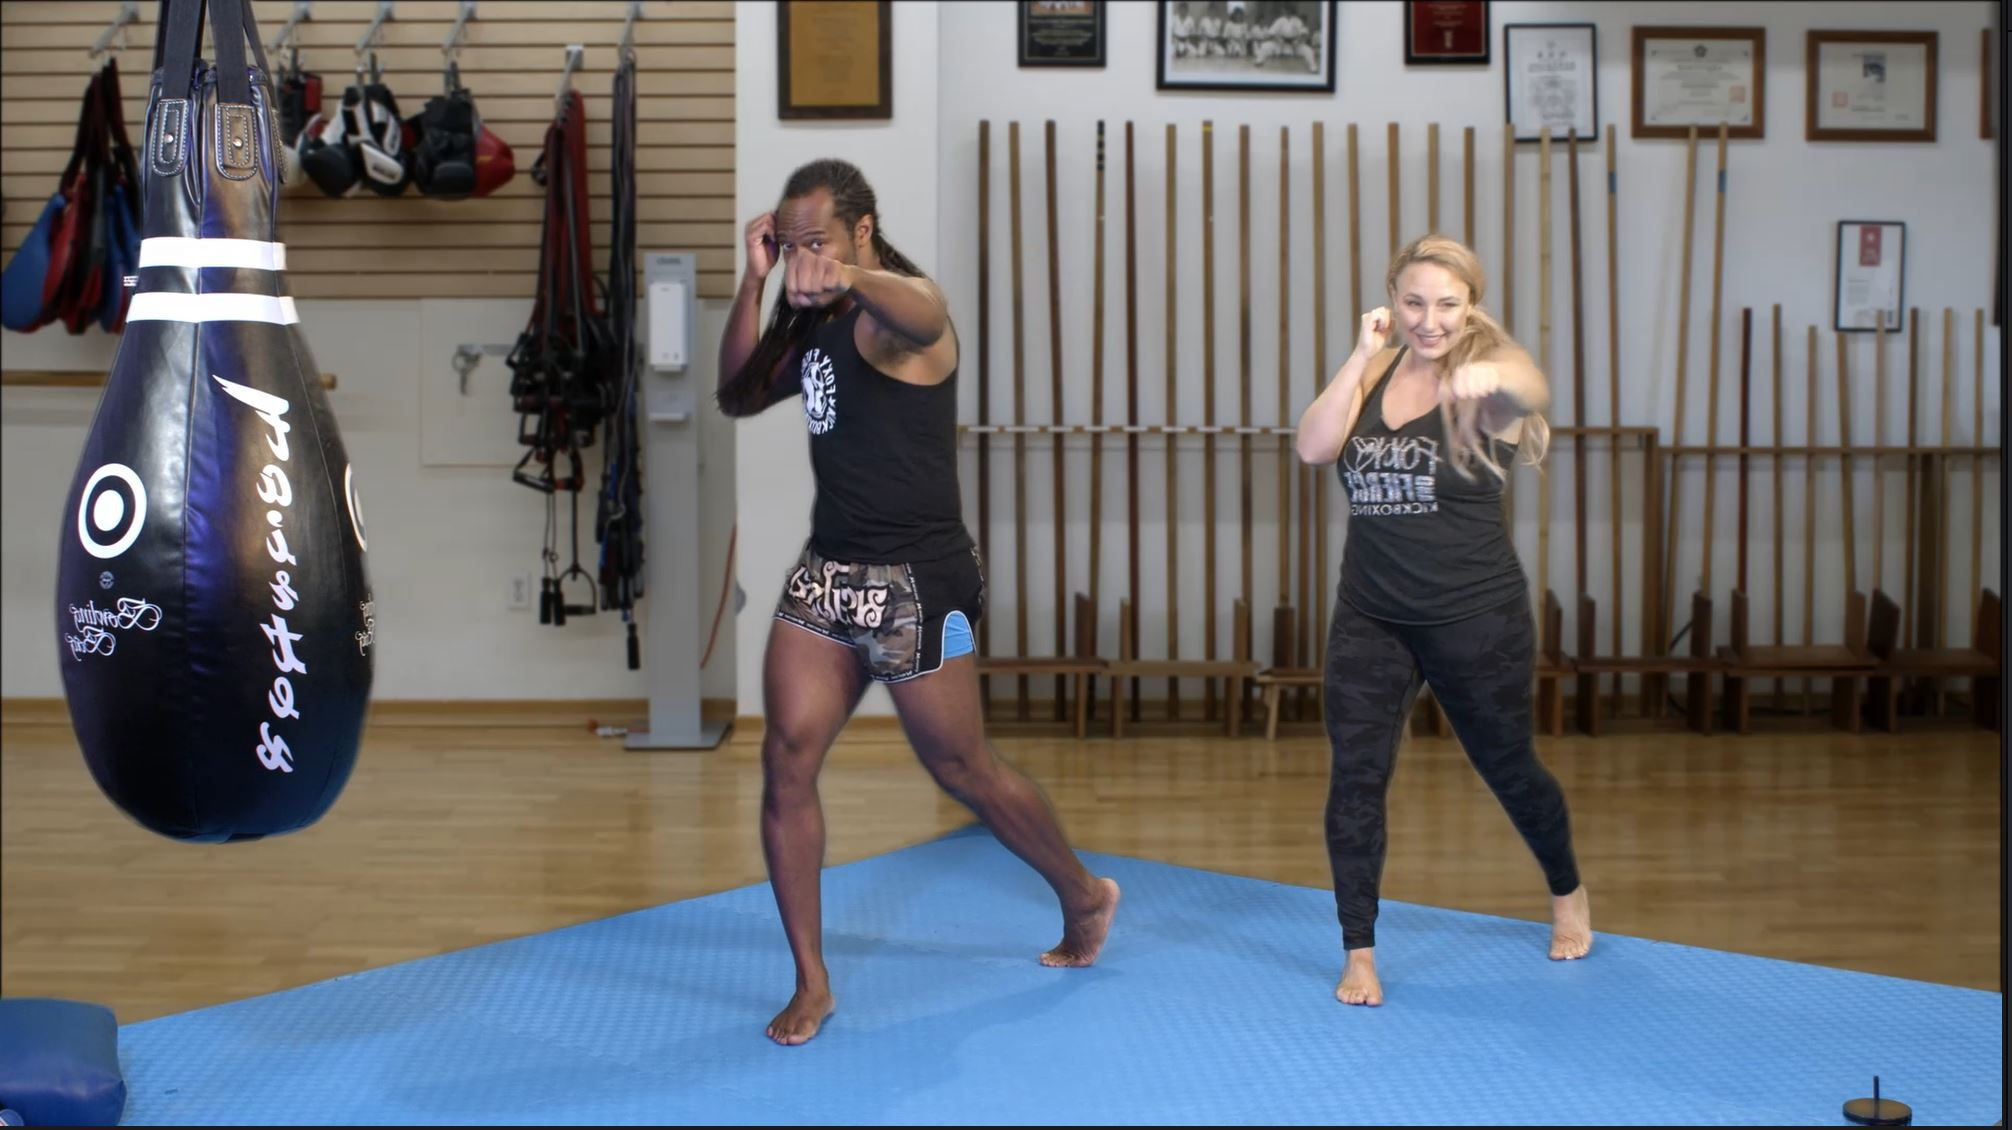 Arms, Abs & Kickboxing 17